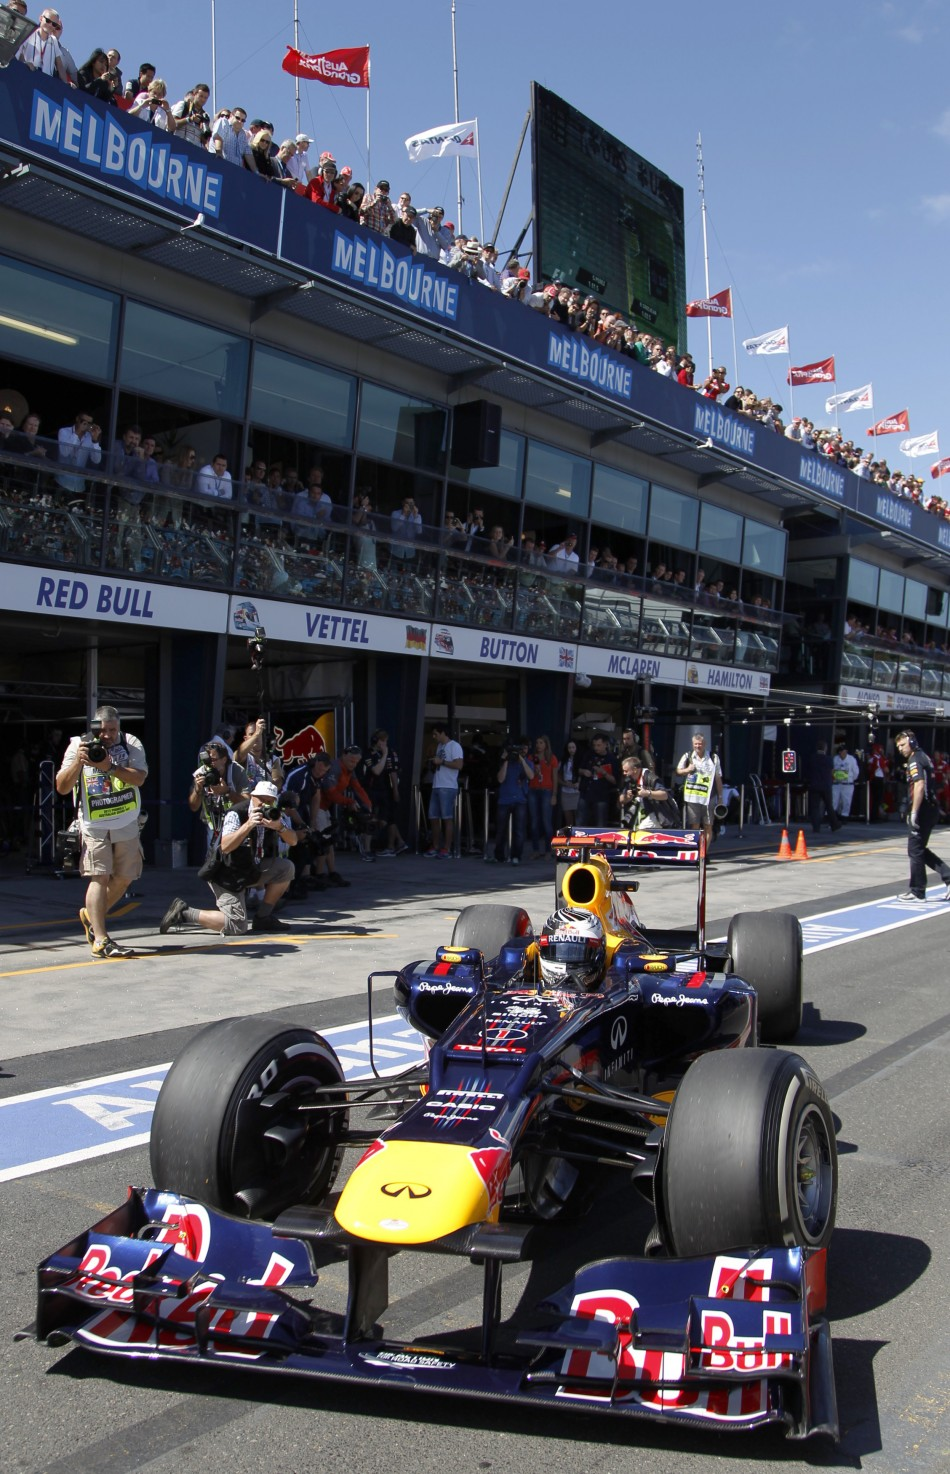 Spectators crowd vantage points as Red Bulls Vettel leaves his teams garage during the third practice session of the Australian F1 Grand Prix at the Albert Park circuit in Melbourne